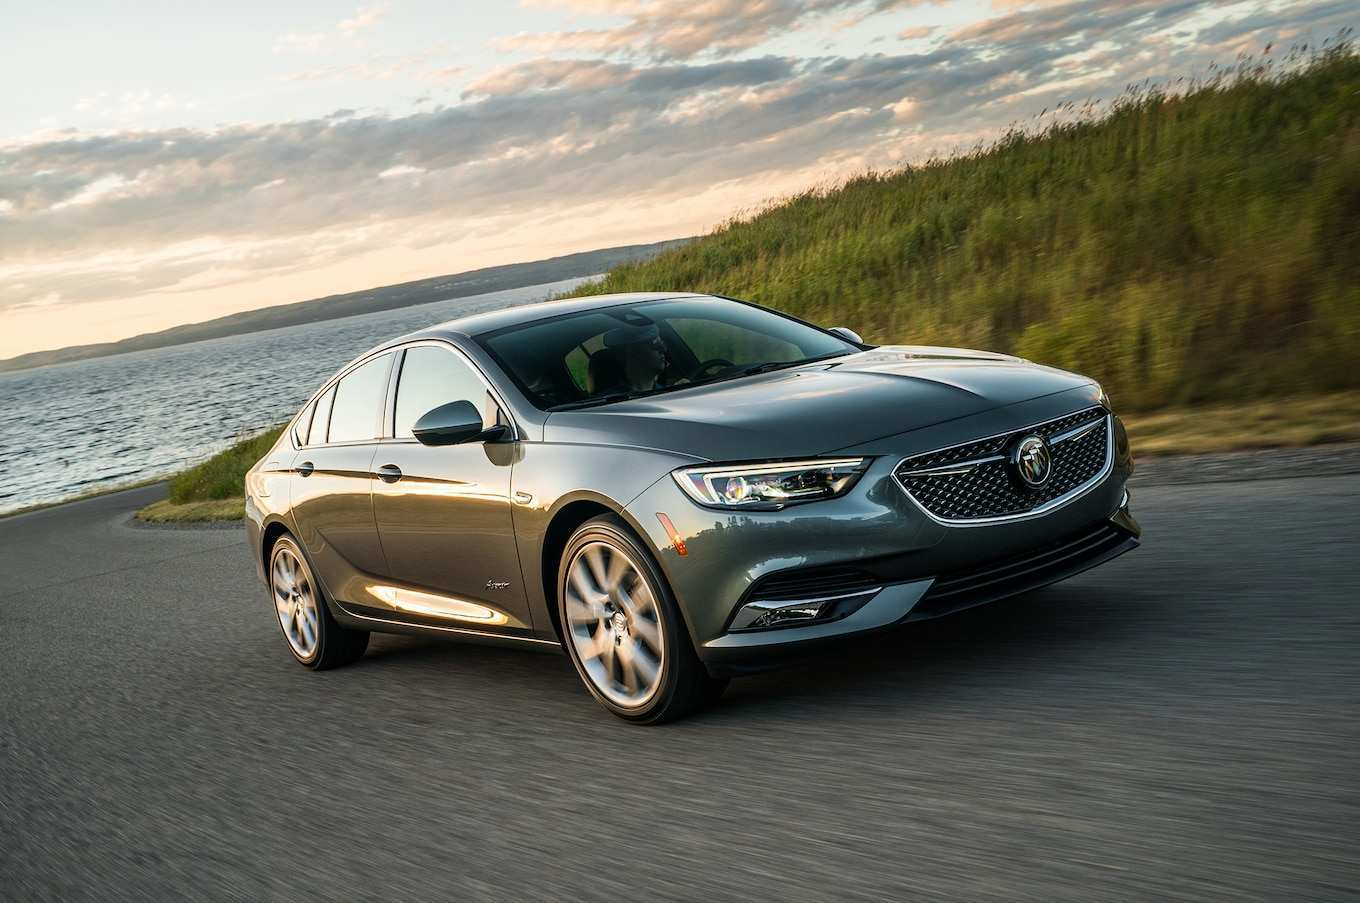 95 All New New 2019 Buick Regal Hybrid Price And Release Date Overview with New 2019 Buick Regal Hybrid Price And Release Date